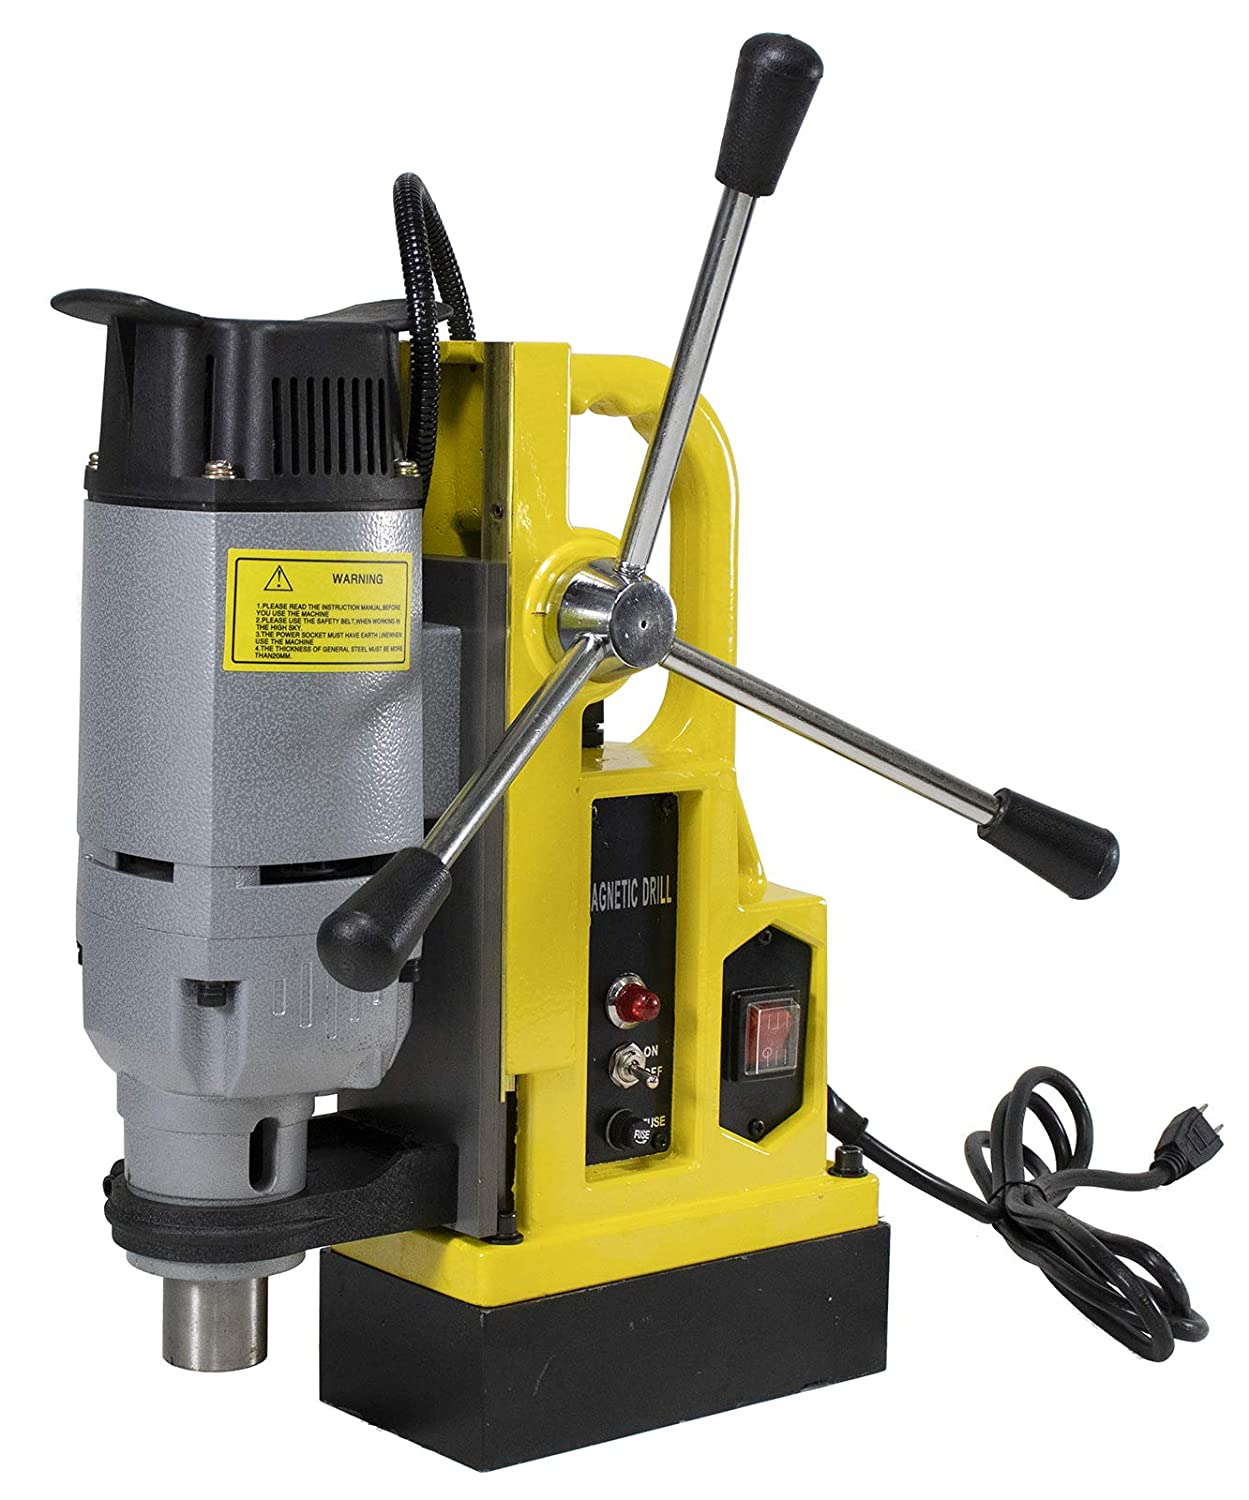 Steel Dragon Tools MD25 Magnetic Drill Press with 1in. Boring Diameter 3372 lb Magnetic Force